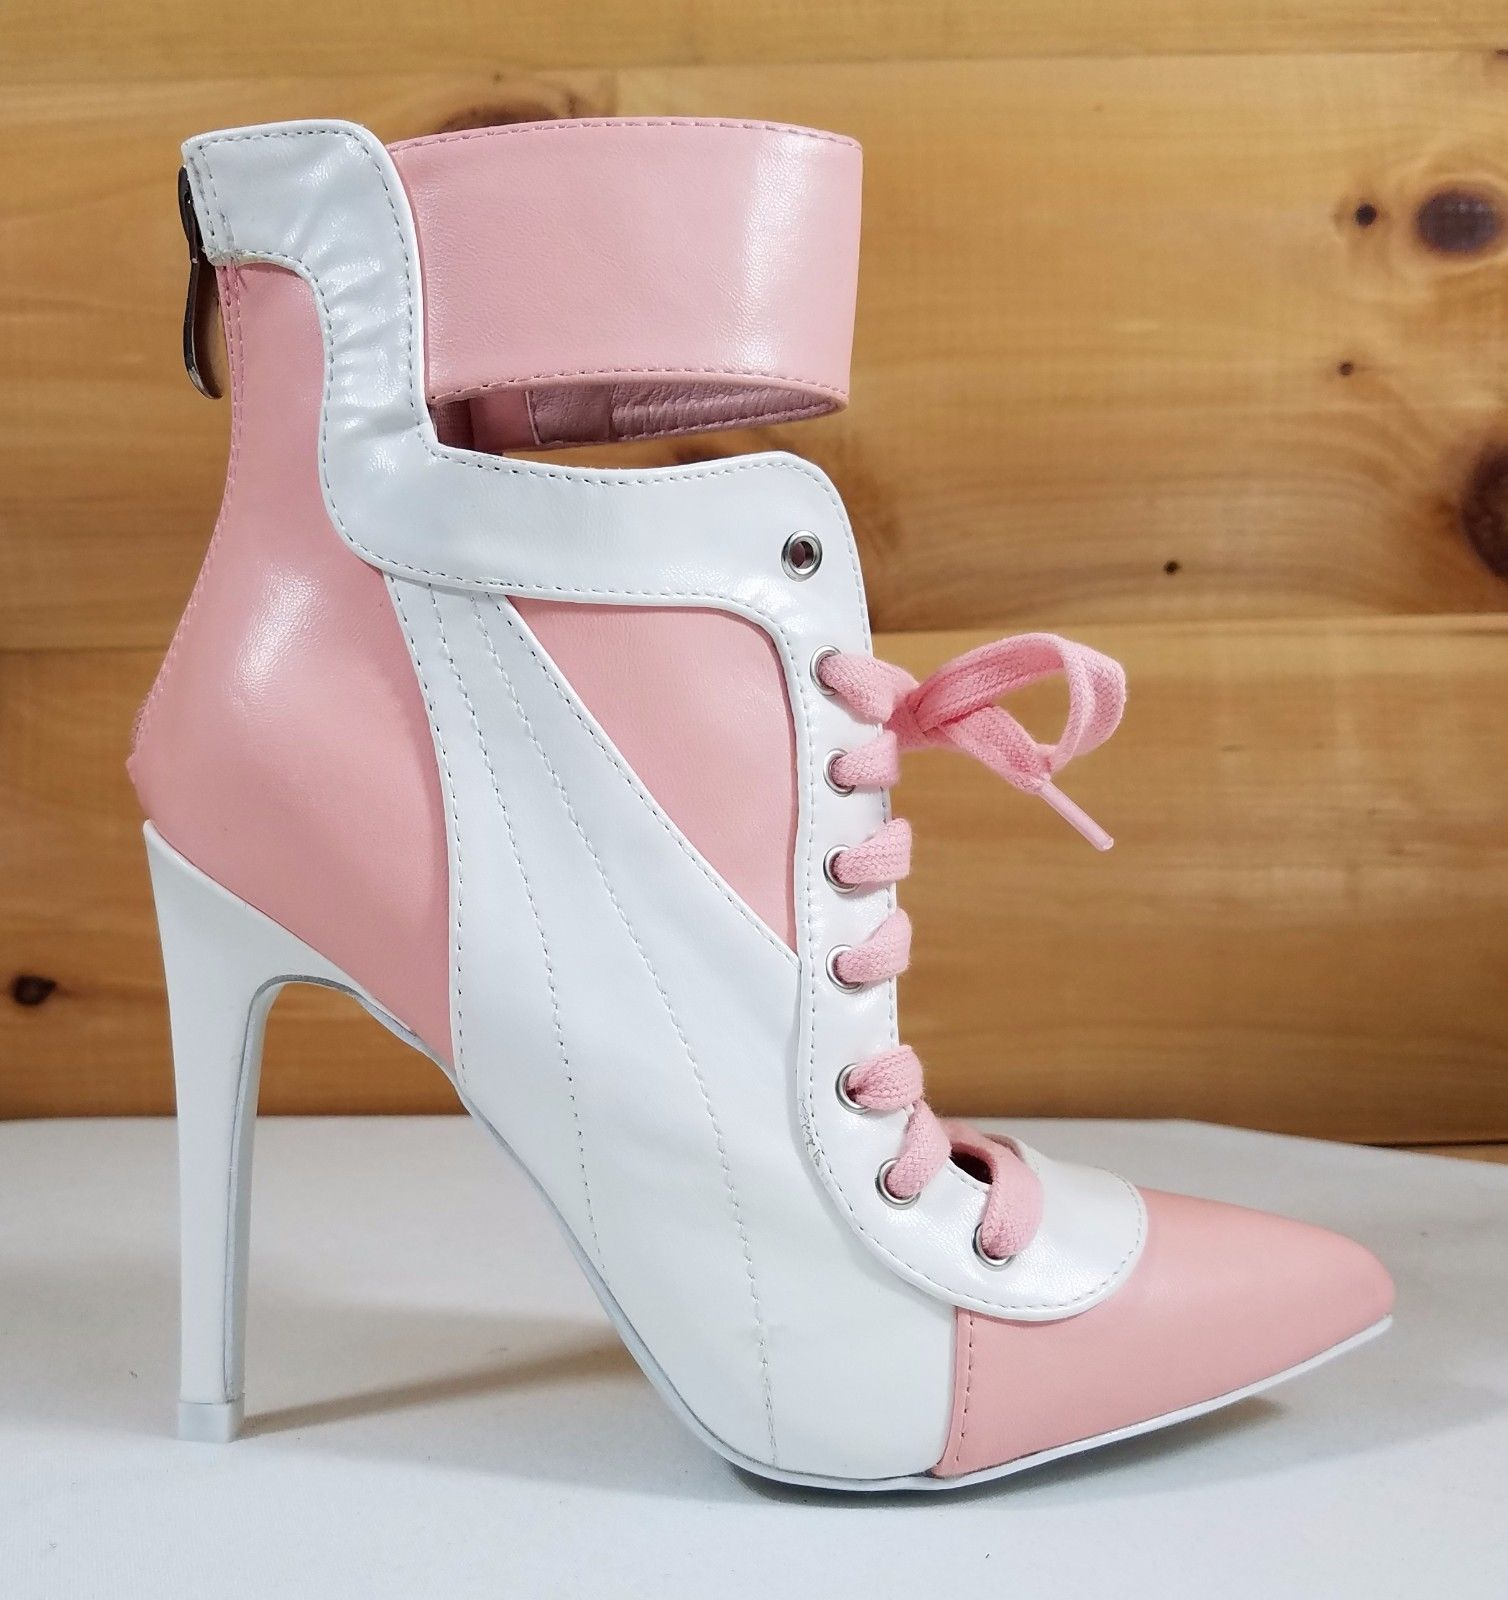 """Image of CR Pink & White Pointy Toe Lace Up Sporty 4.5"""" High Heel Ankle Sneaker Boots"""